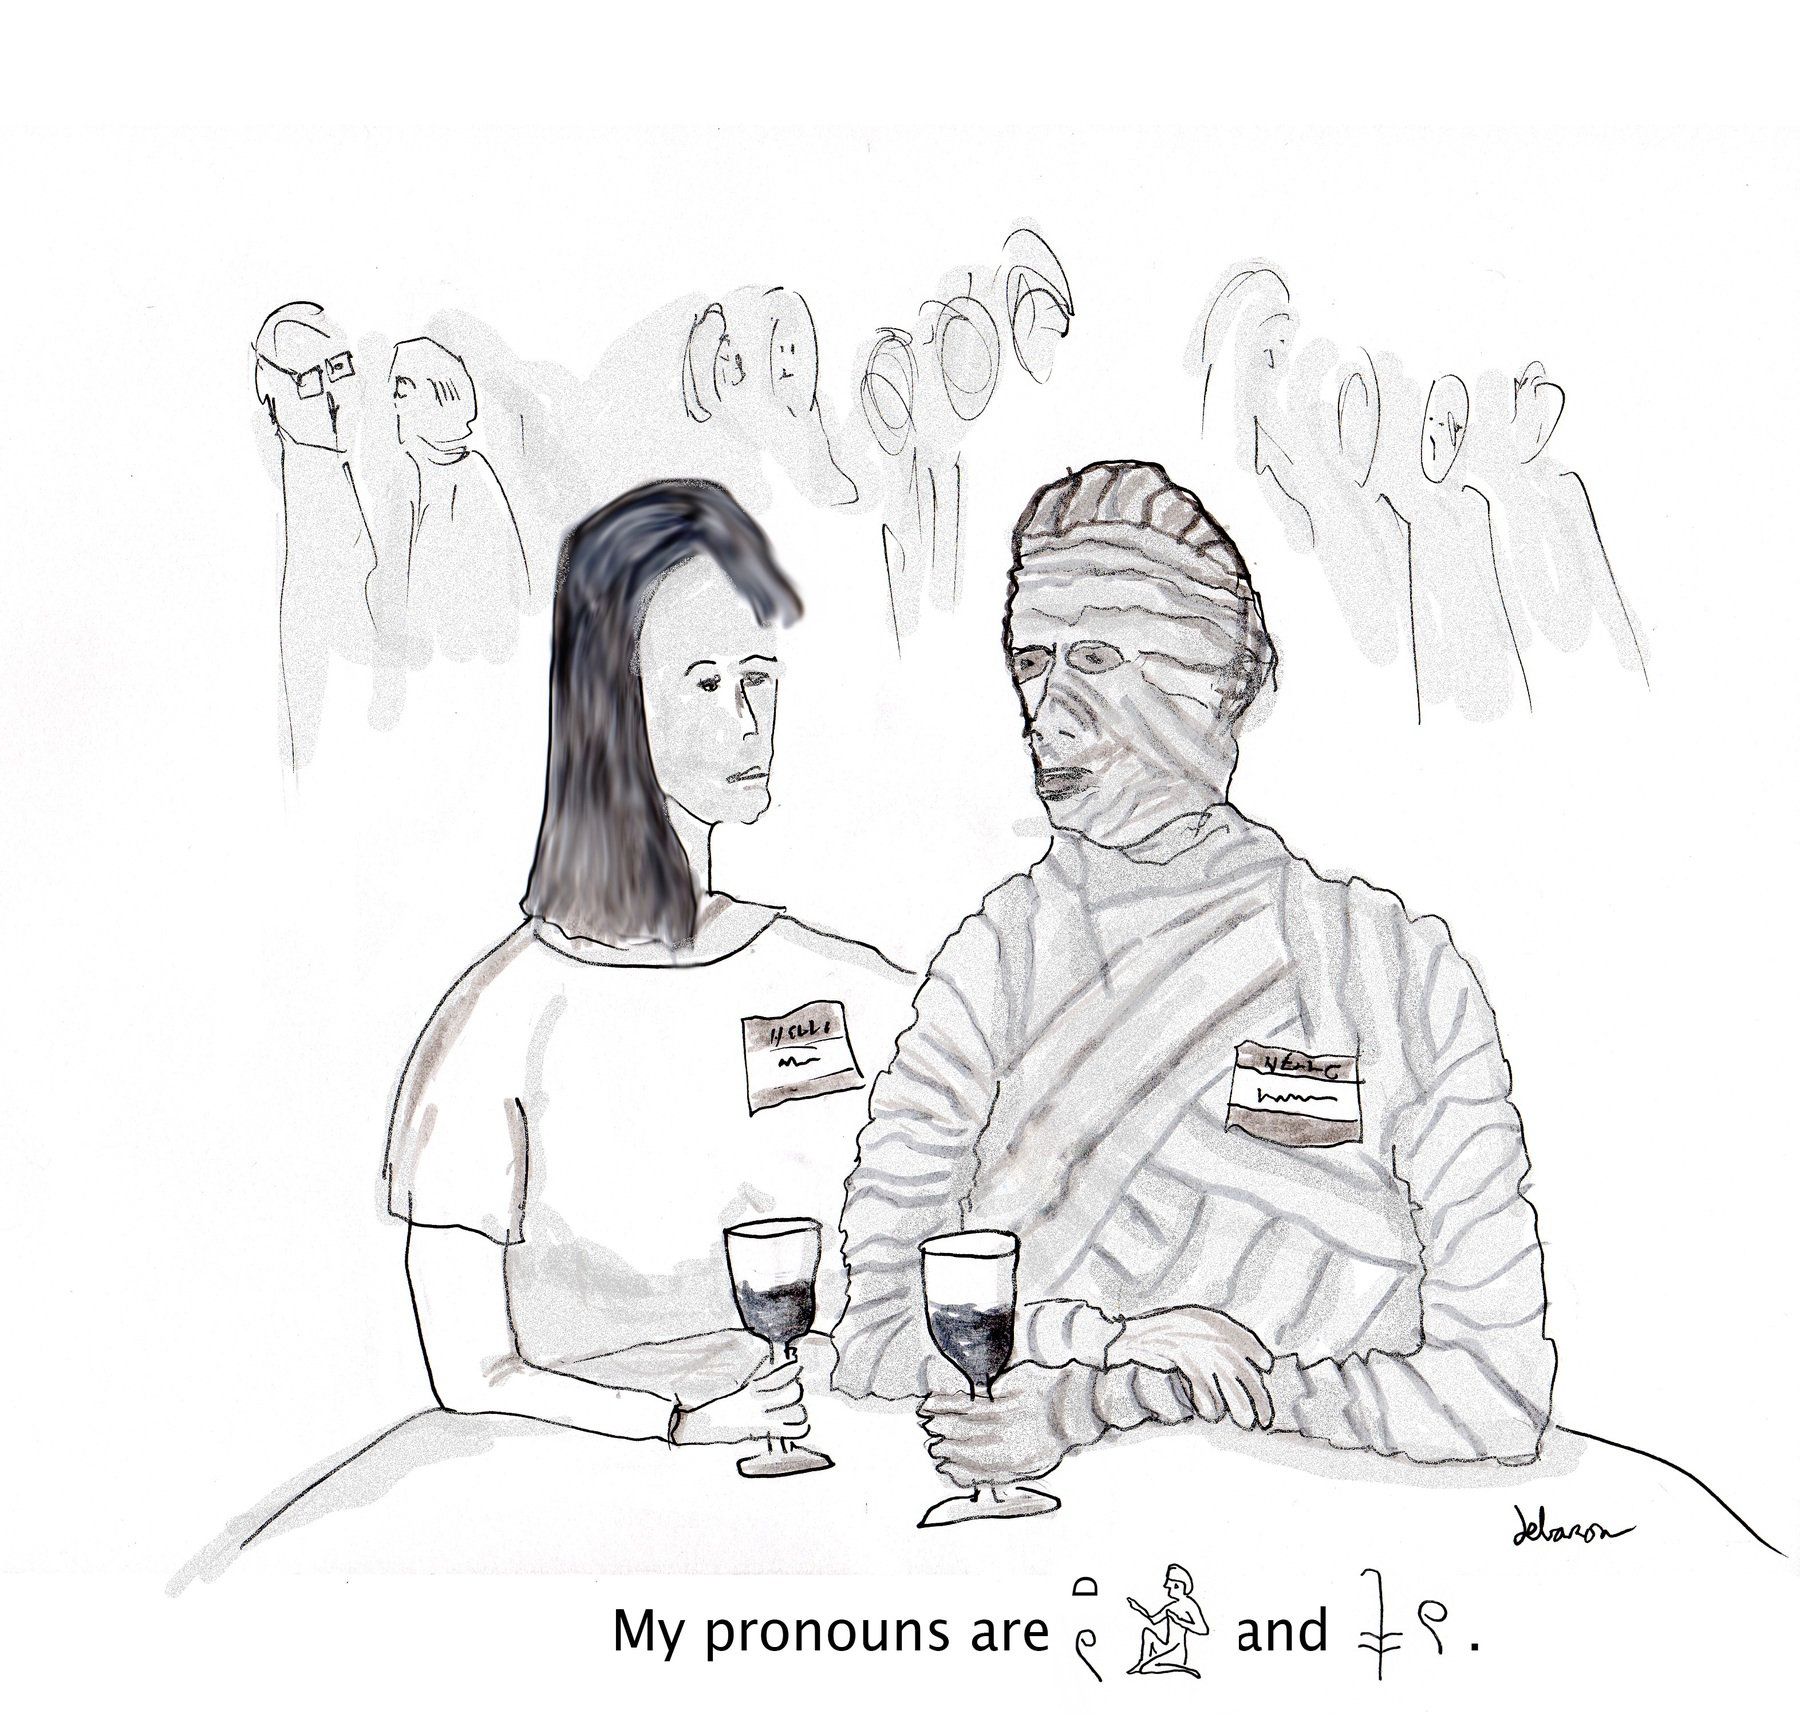 A mummy at a cocktail indicates their pronouns as two hieroglyphs